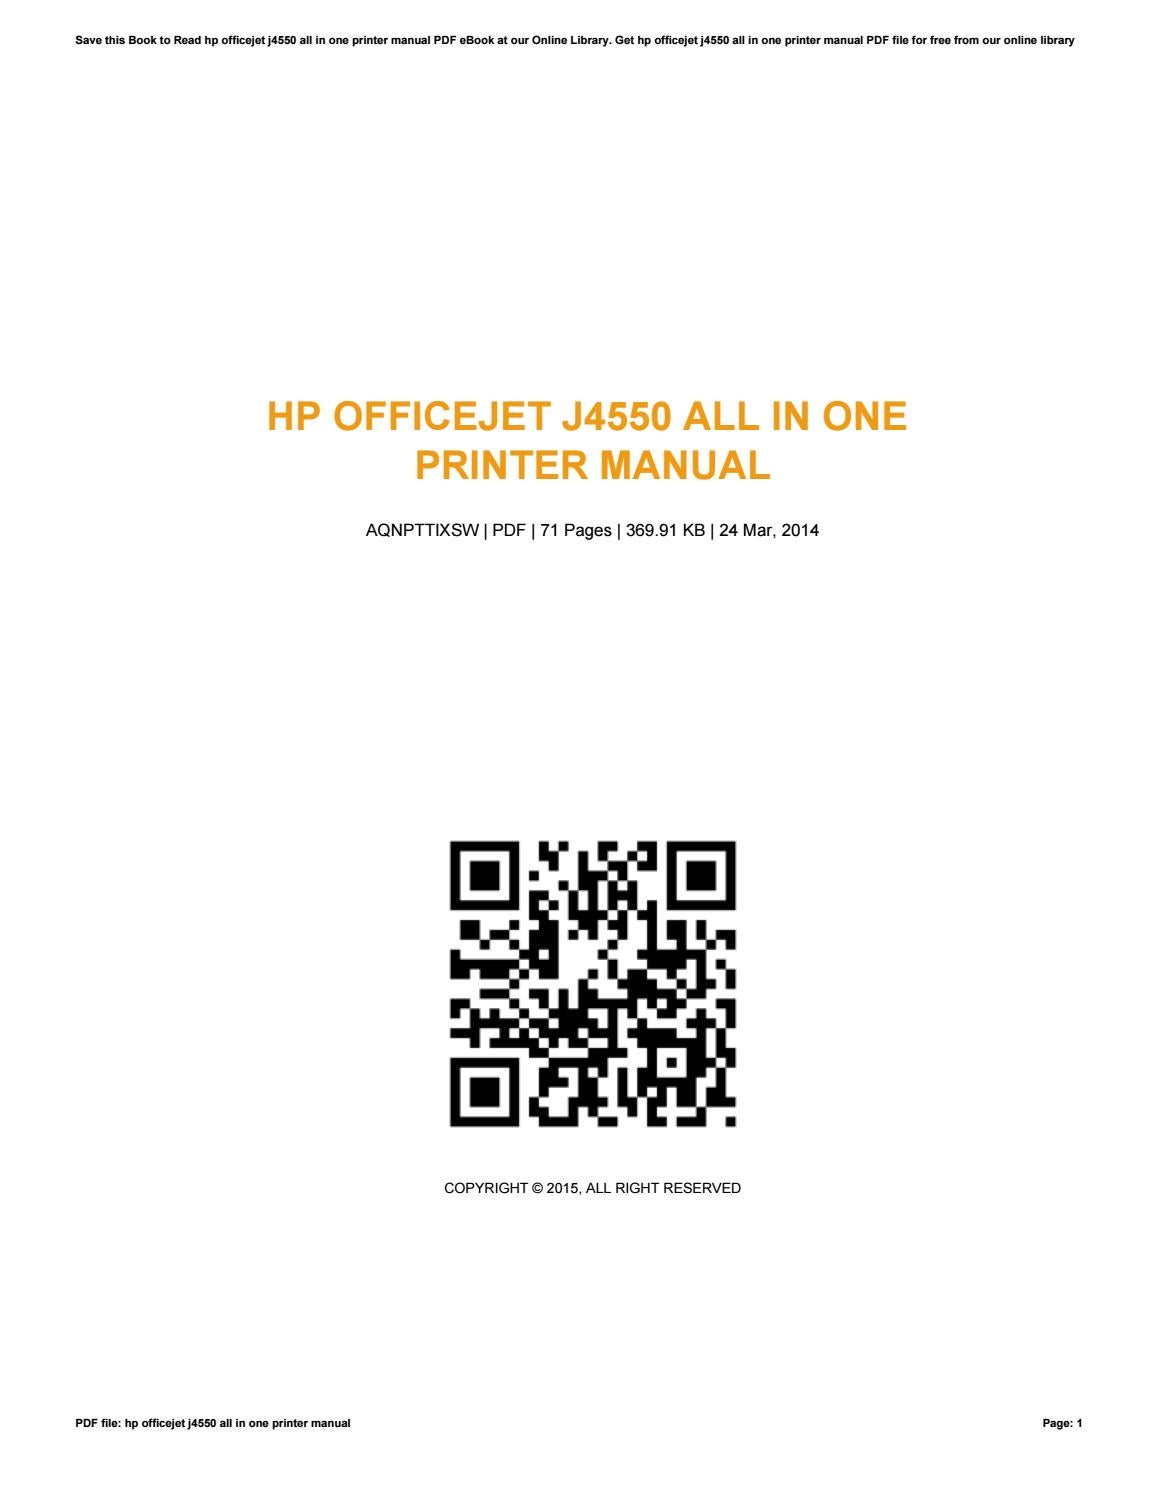 Wrg-6760] hp officejet j4550 all in one manual | 2019 ebook library.